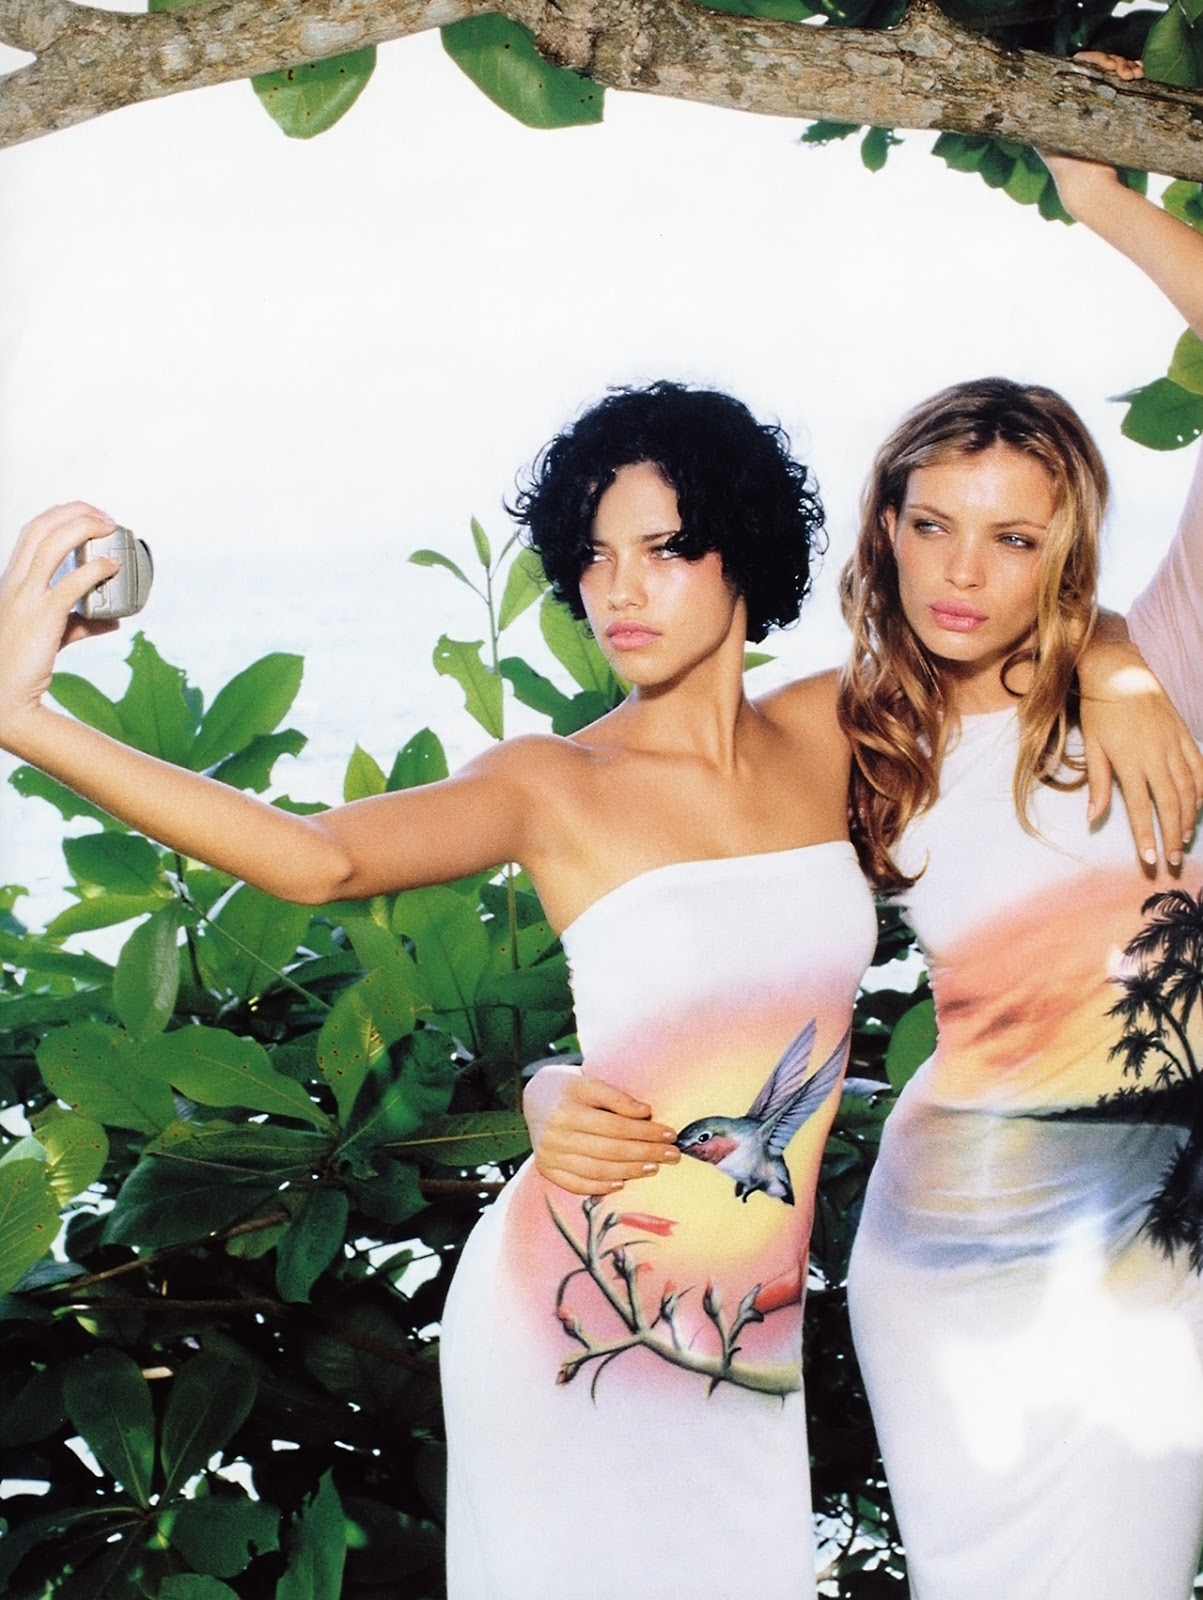 Adriana Lima & Esther Canadas in Heat seekers / Vogue UK June 1999 (photography: Elle von Unwerth) / via fashioned by love british fashion blog